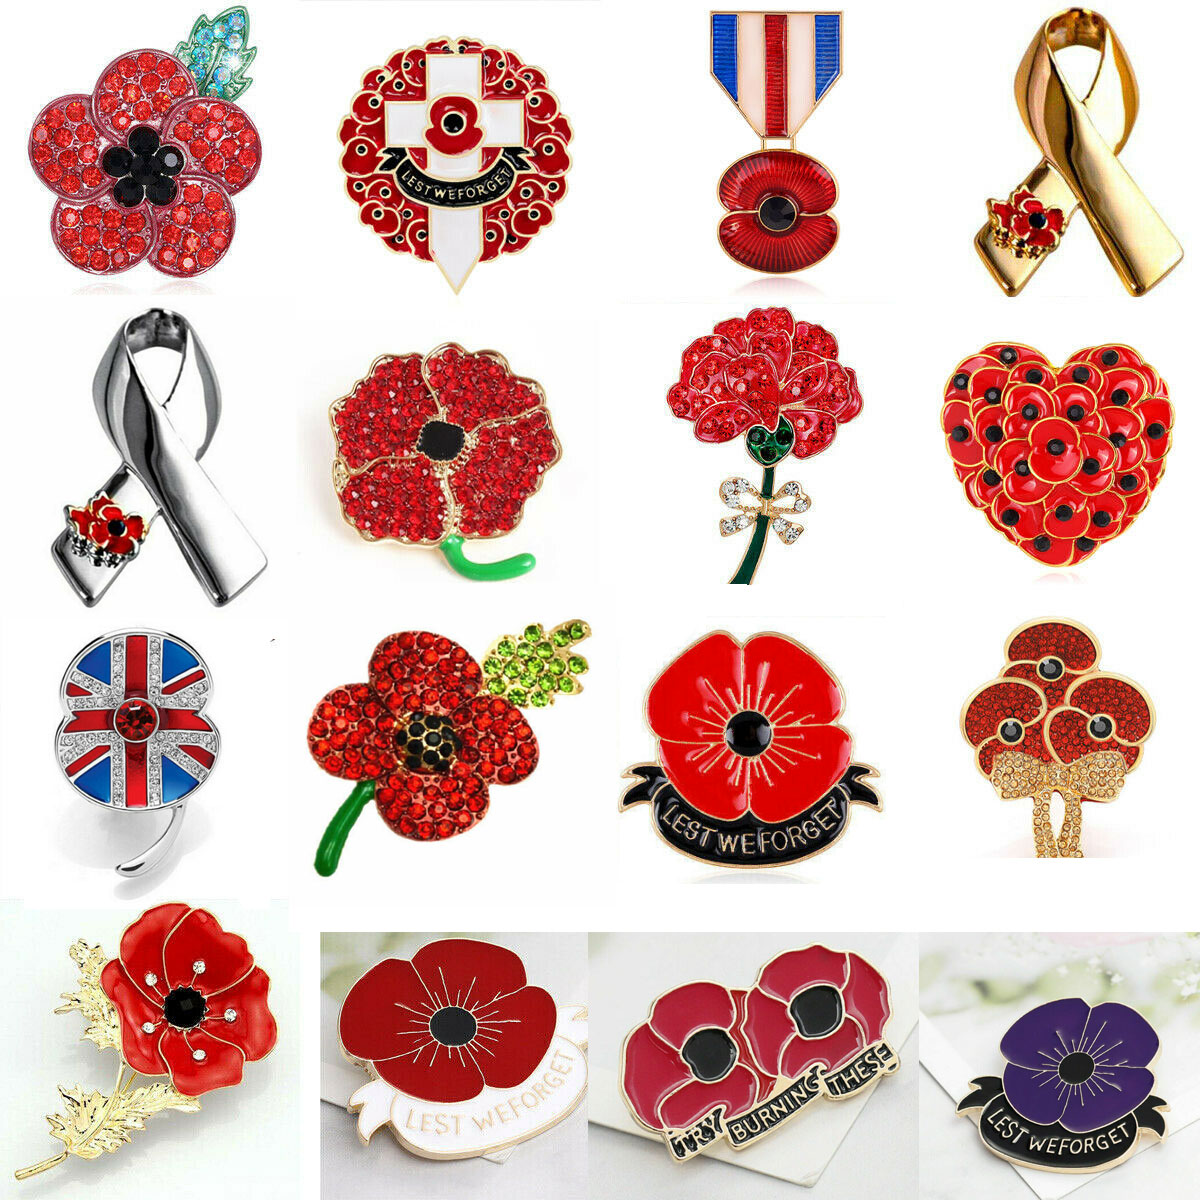 best badge UK 2019 Remembrance Day Soldier Veteran Army Red Poppy Enamel Pin Badge Brooch